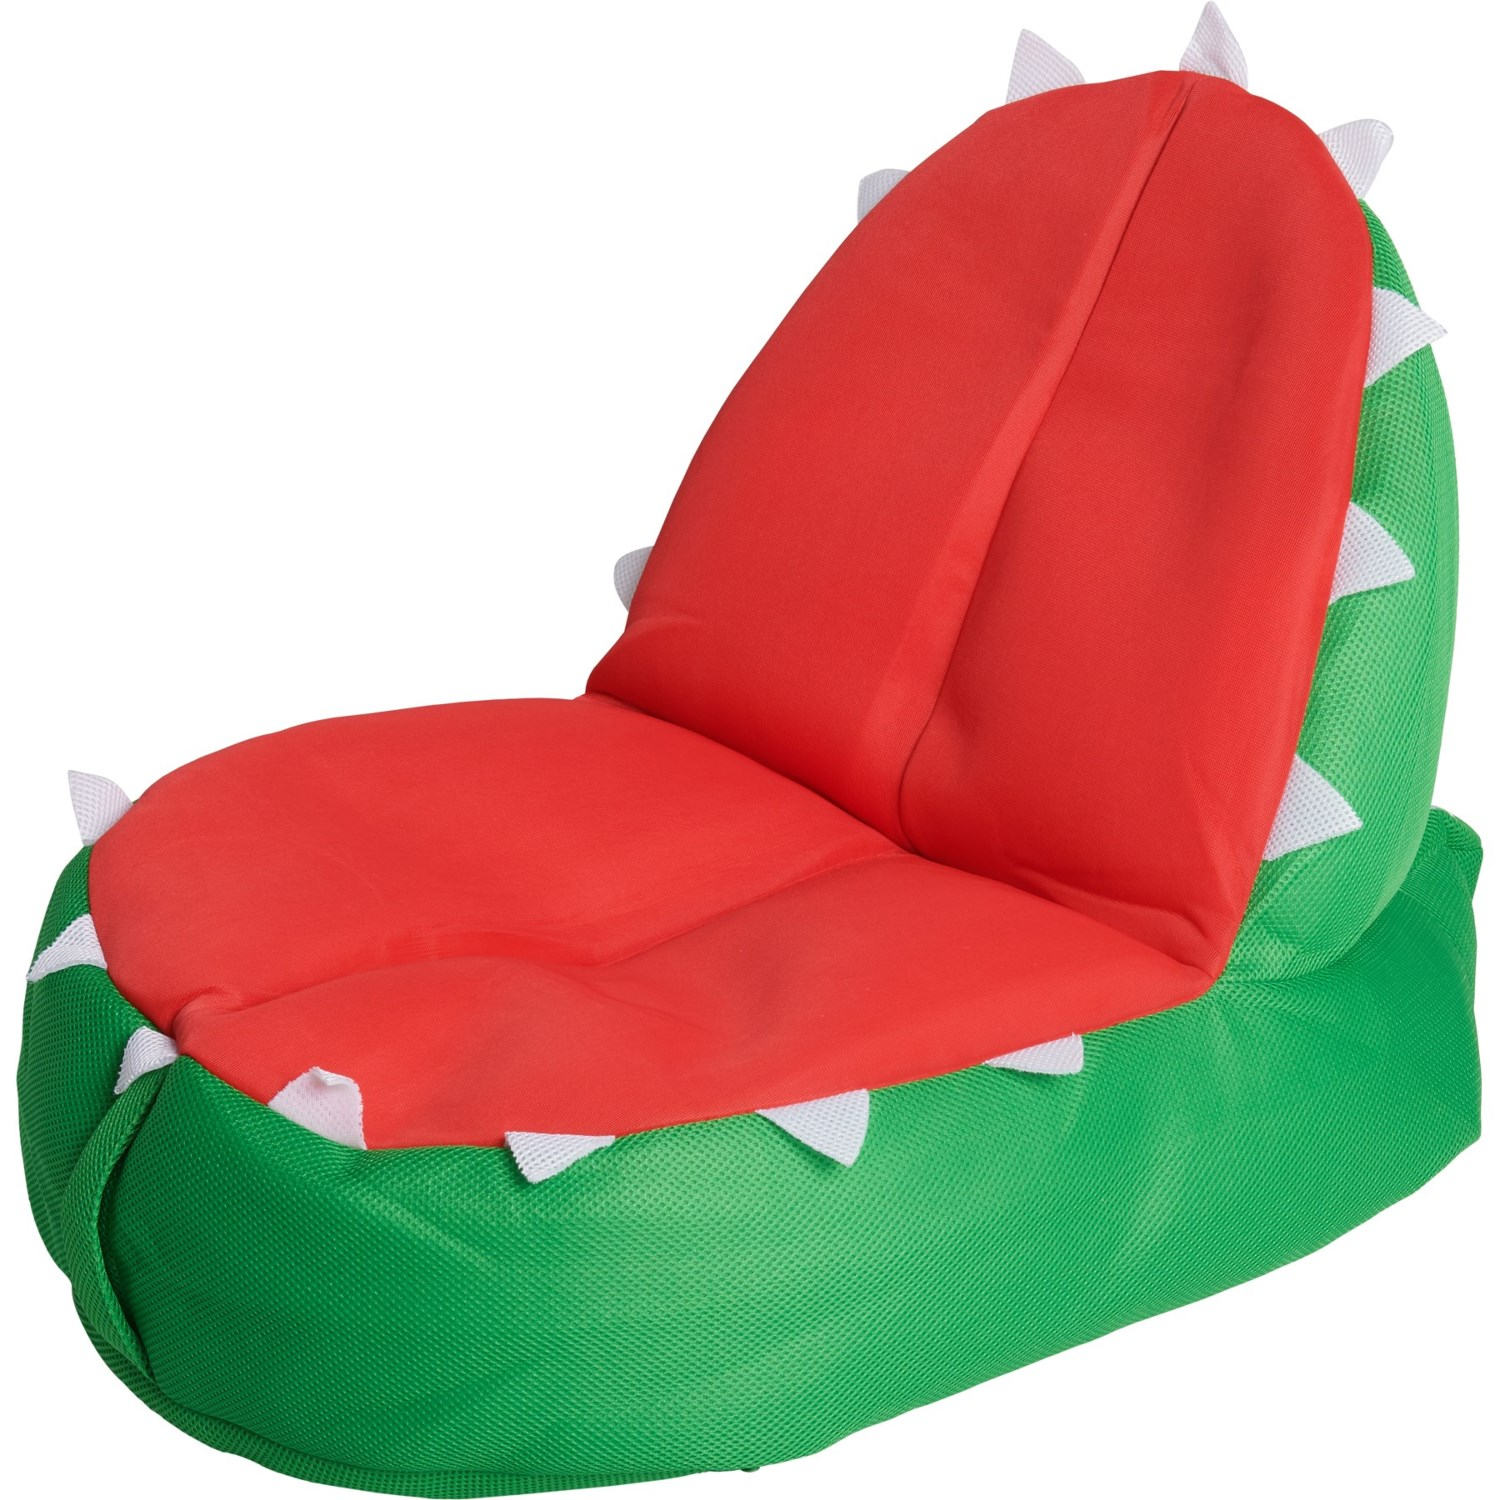 Awe Inspiring Big Joe Alligator Chomper Bean Bag Chair Save 43 Short Links Chair Design For Home Short Linksinfo